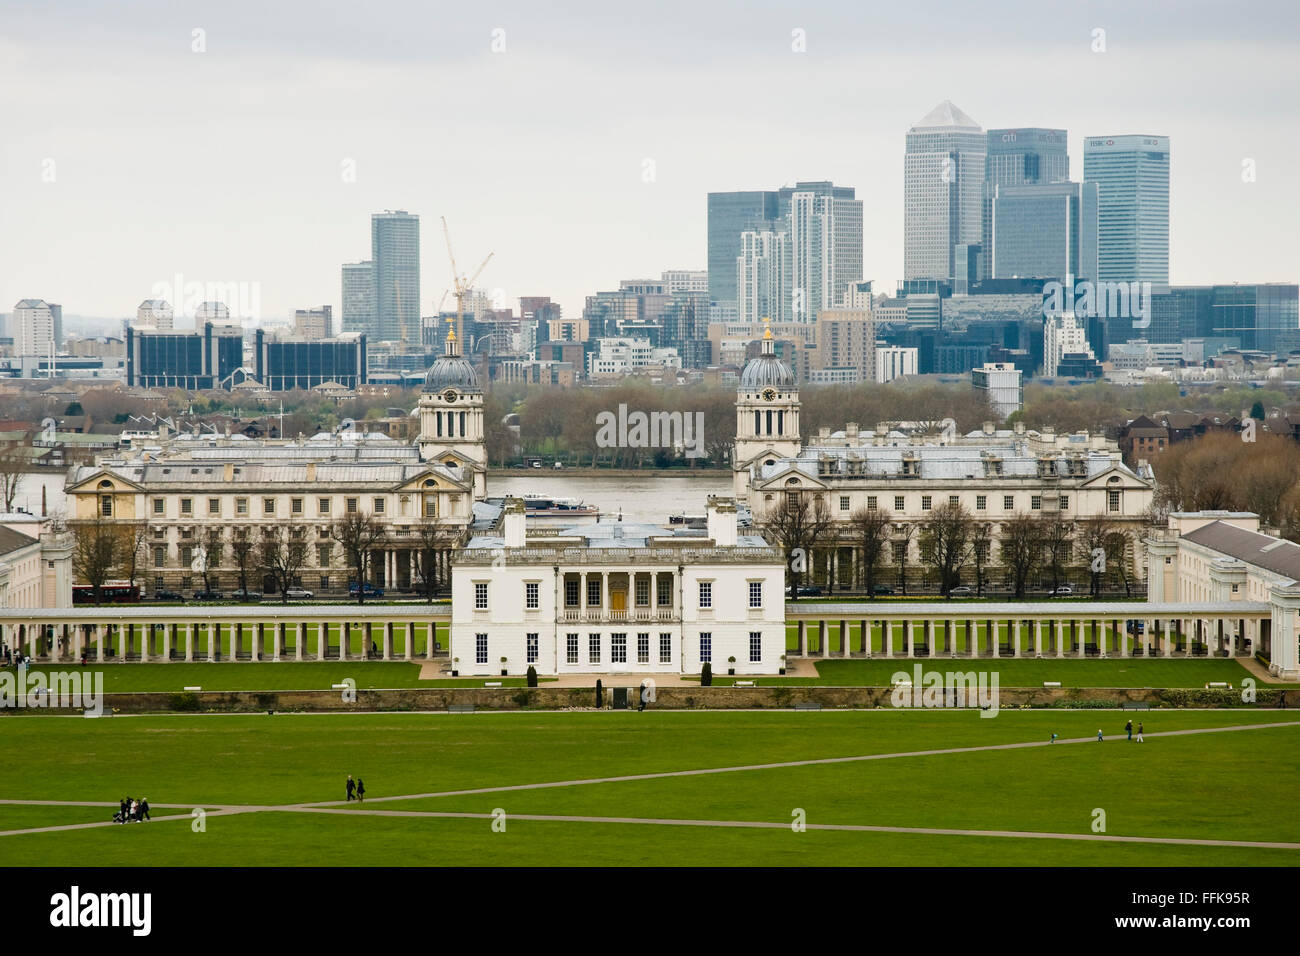 View from Greenwich Park towards the National Maritime Museum, Docklands and Canary Wharf, London, England, UK - Stock Image